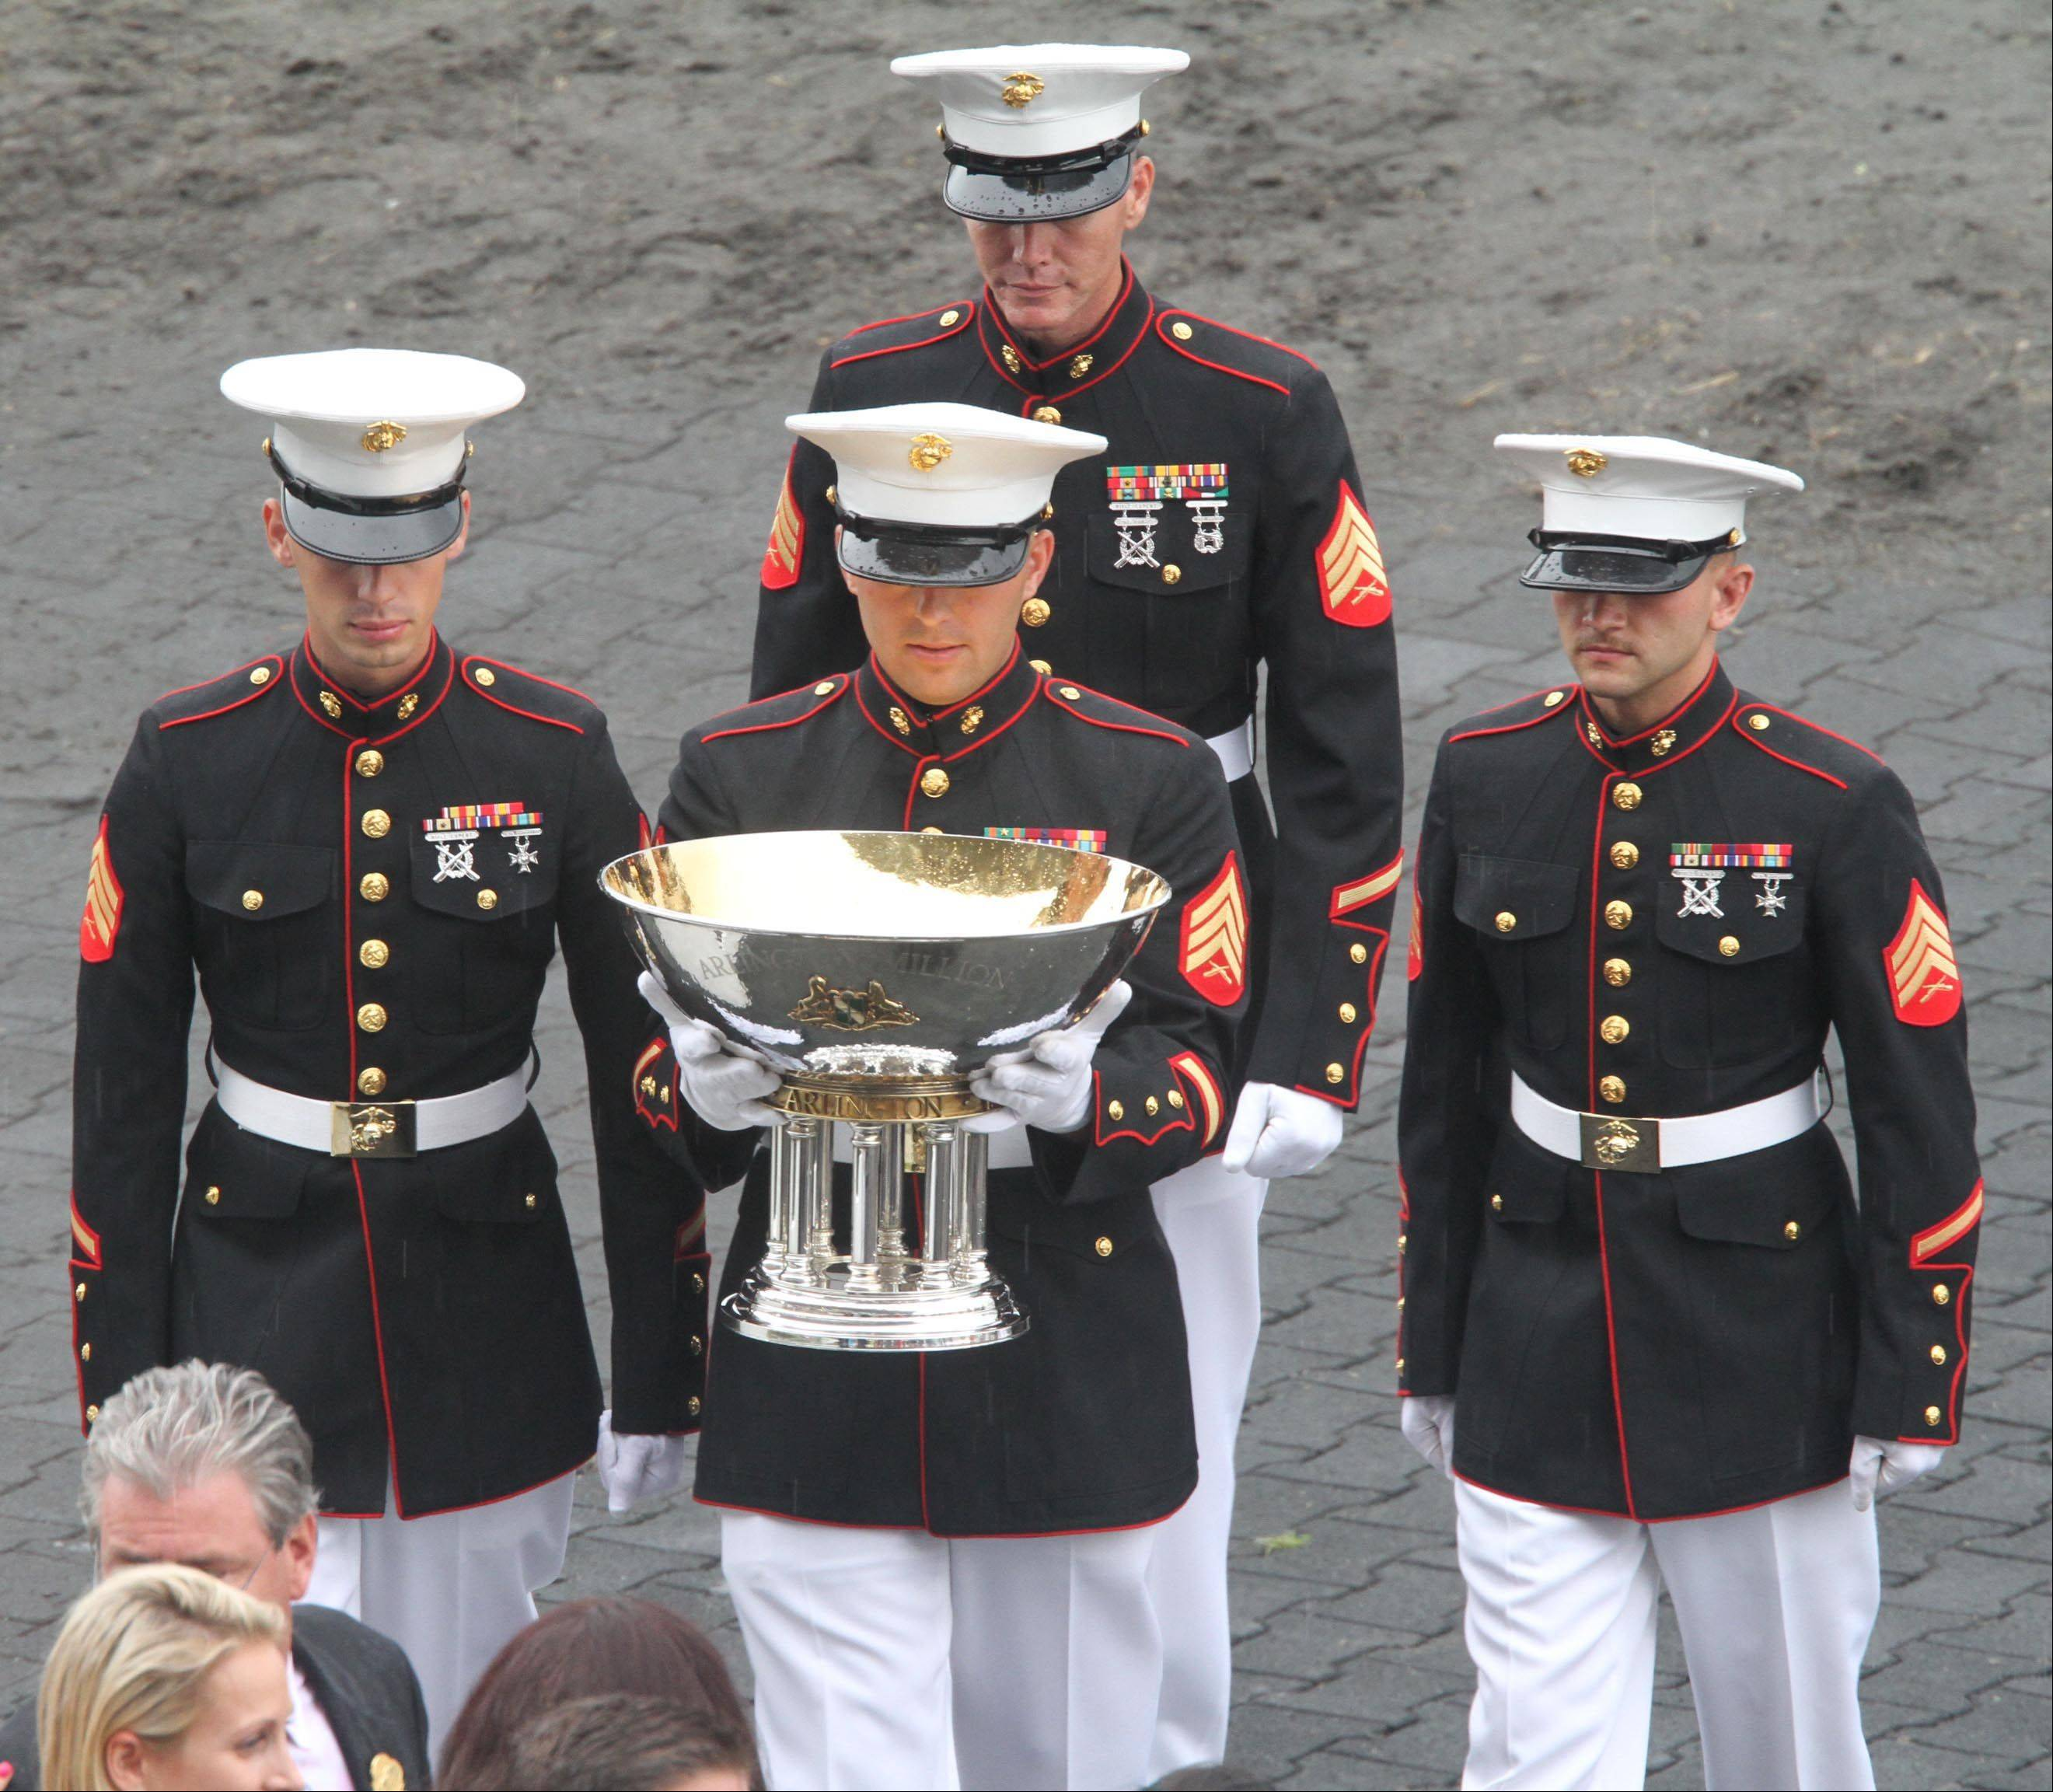 A Marine color guard presented the the Arlington Million trophy.